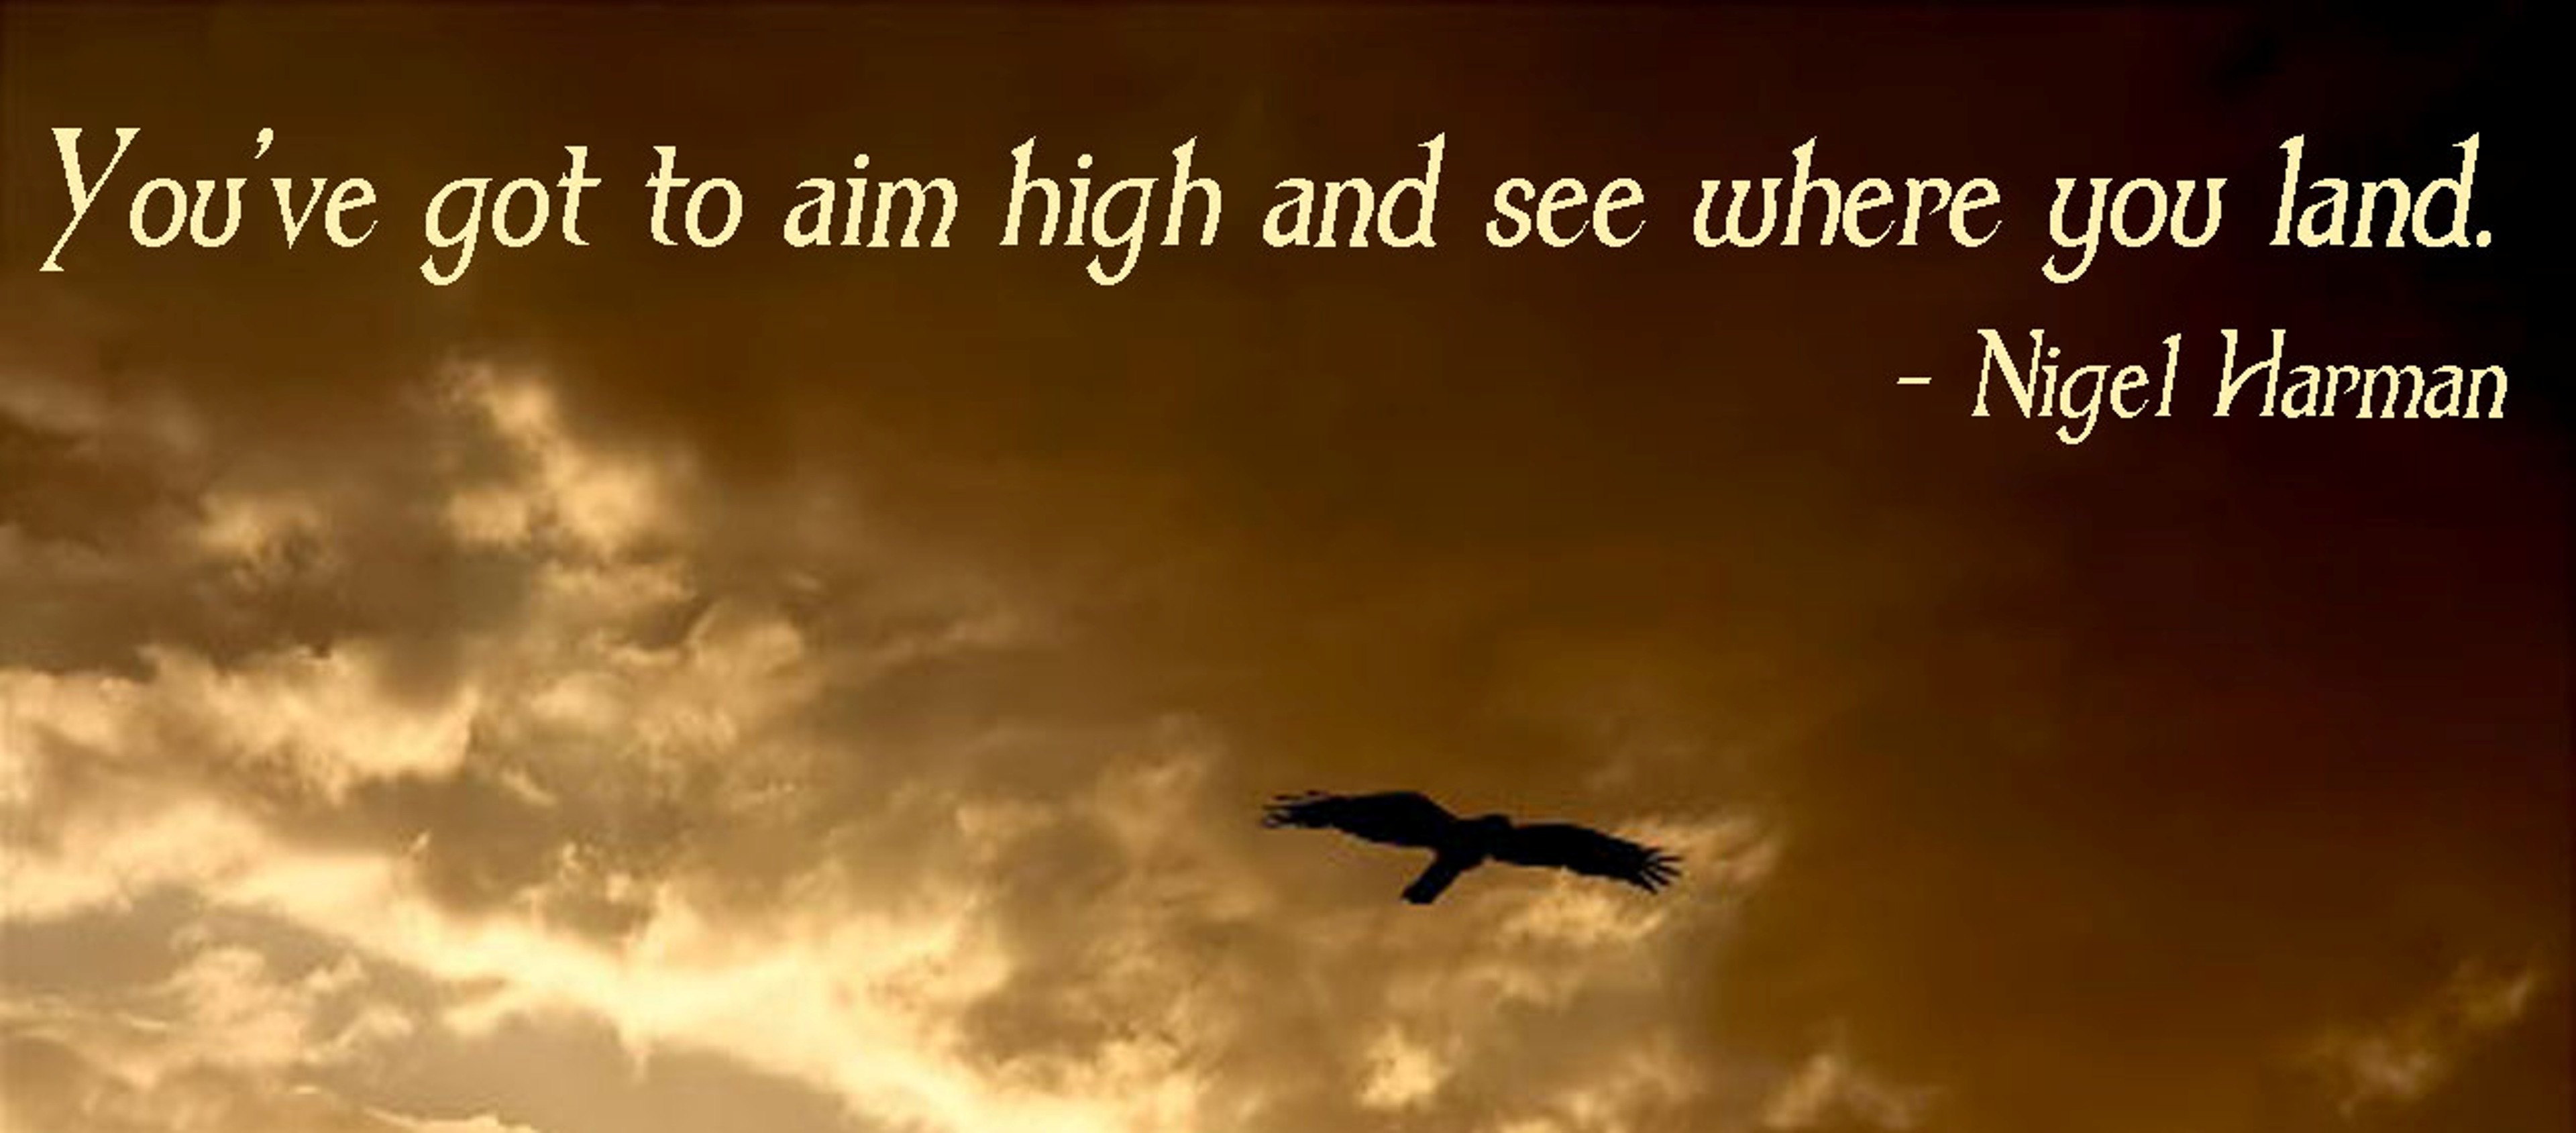 You've Got To Aim And See Where You Land